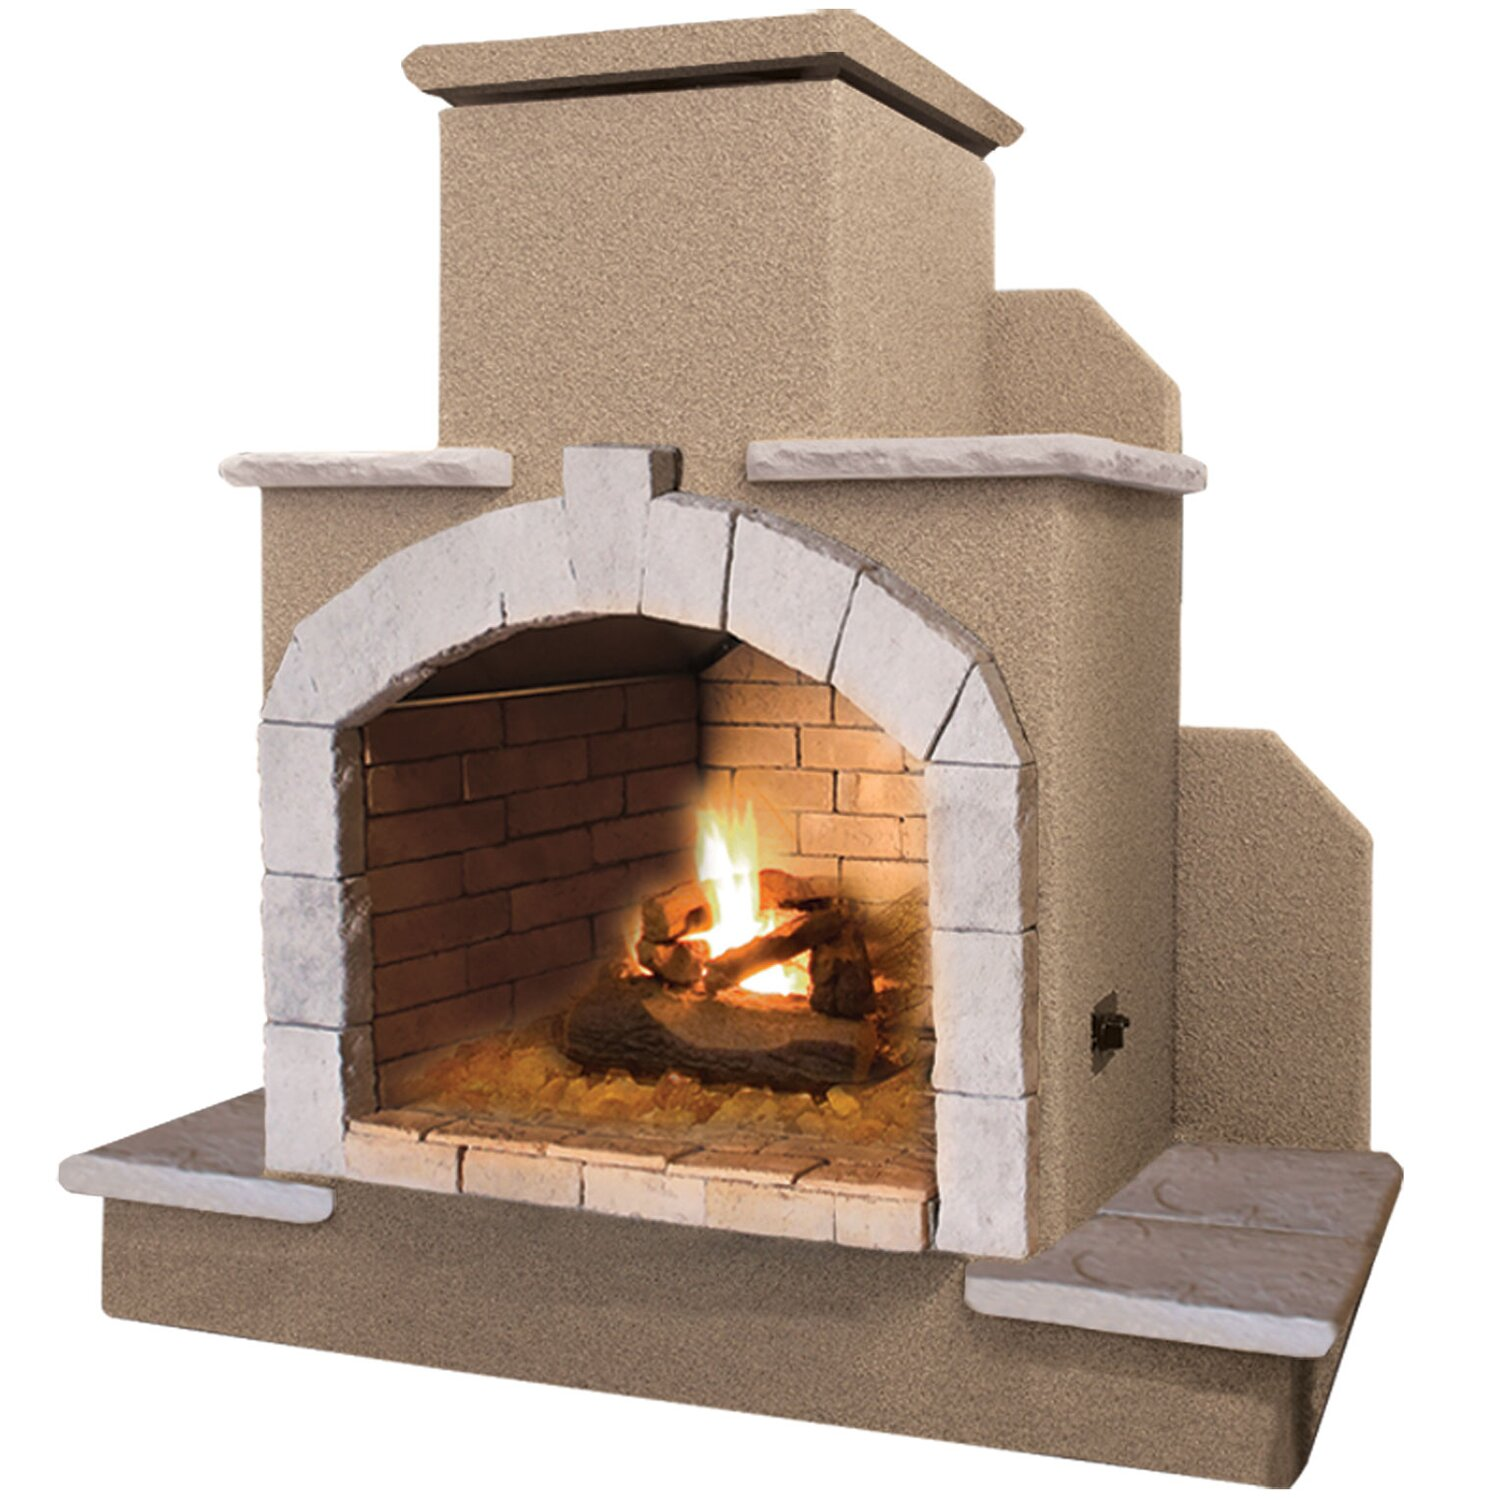 Calflame Propane Gas Outdoor Fireplace Wayfair